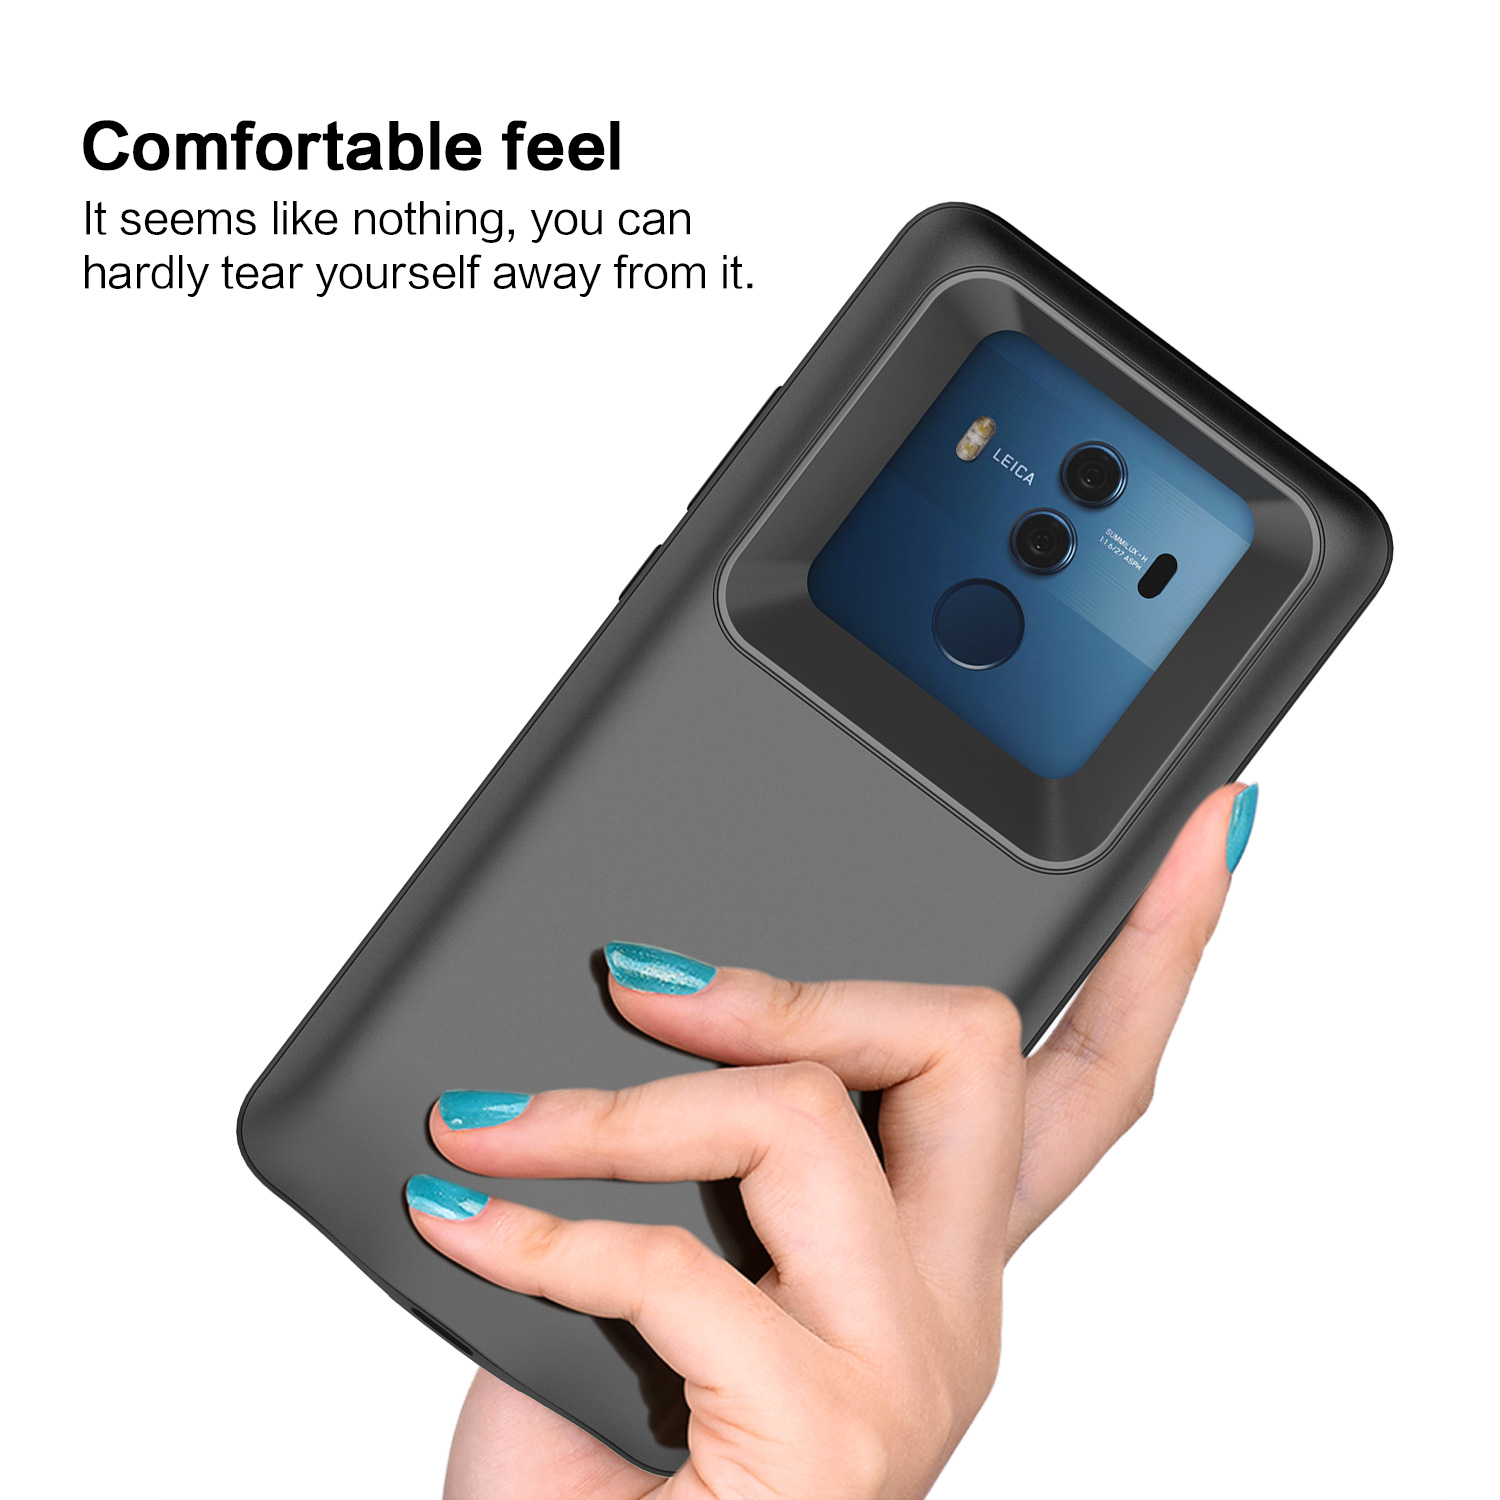 5200mAh Power Bank Battery Charger Case For Huawei Mate 10 Pro case External Backup Charger Case For Huawei Mate 10 Pro Cover5200mAh Power Bank Battery Charger Case For Huawei Mate 10 Pro case External Backup Charger Case For Huawei Mate 10 Pro Cover